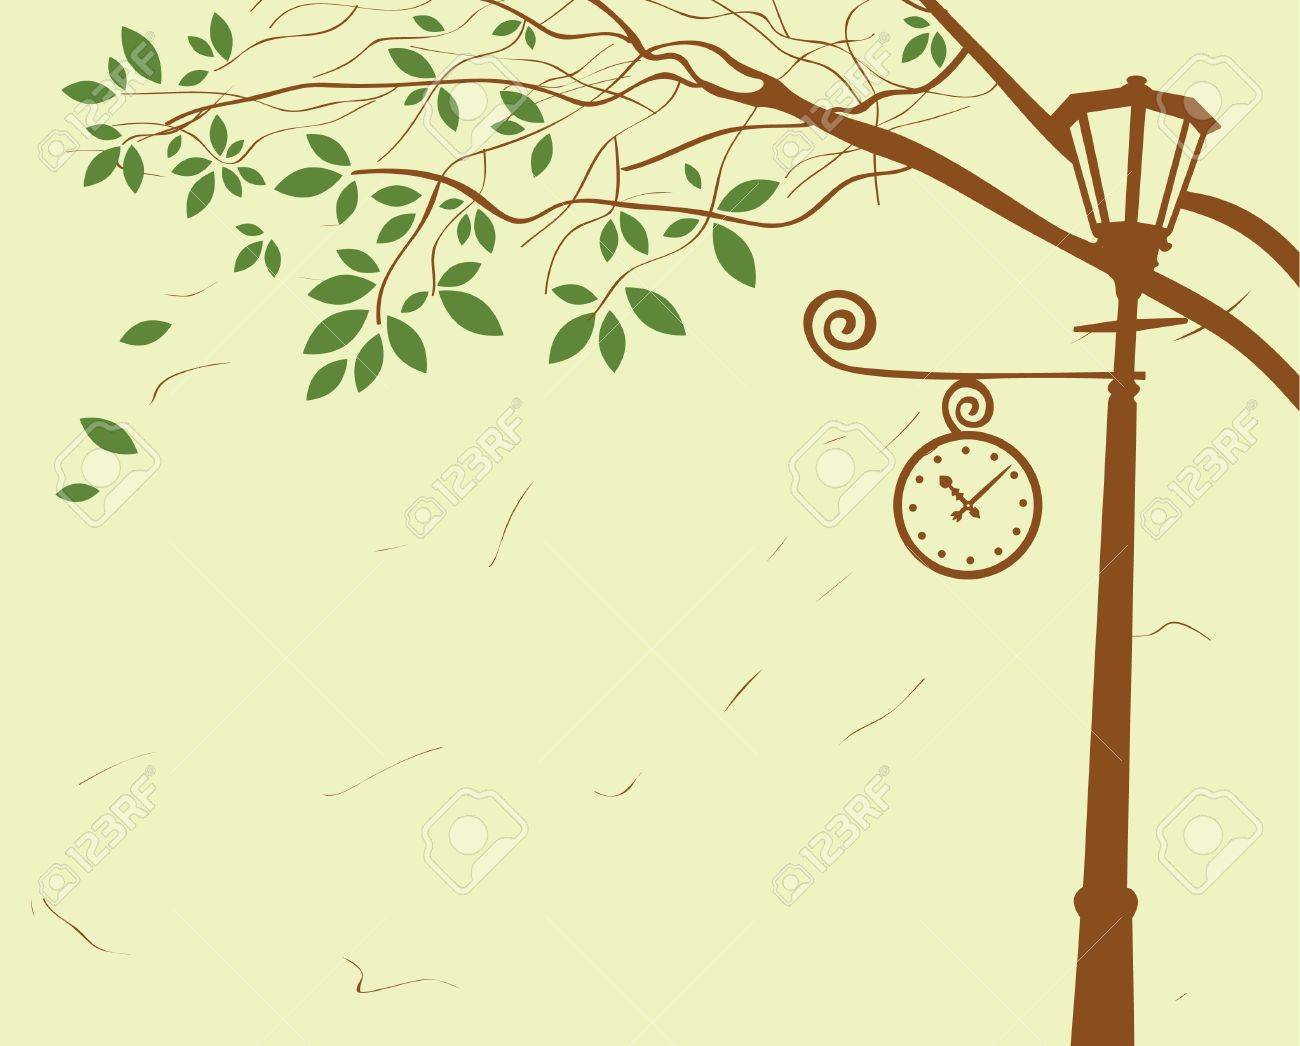 city park with lantern and clock under a tree Stock Vector - 18403956